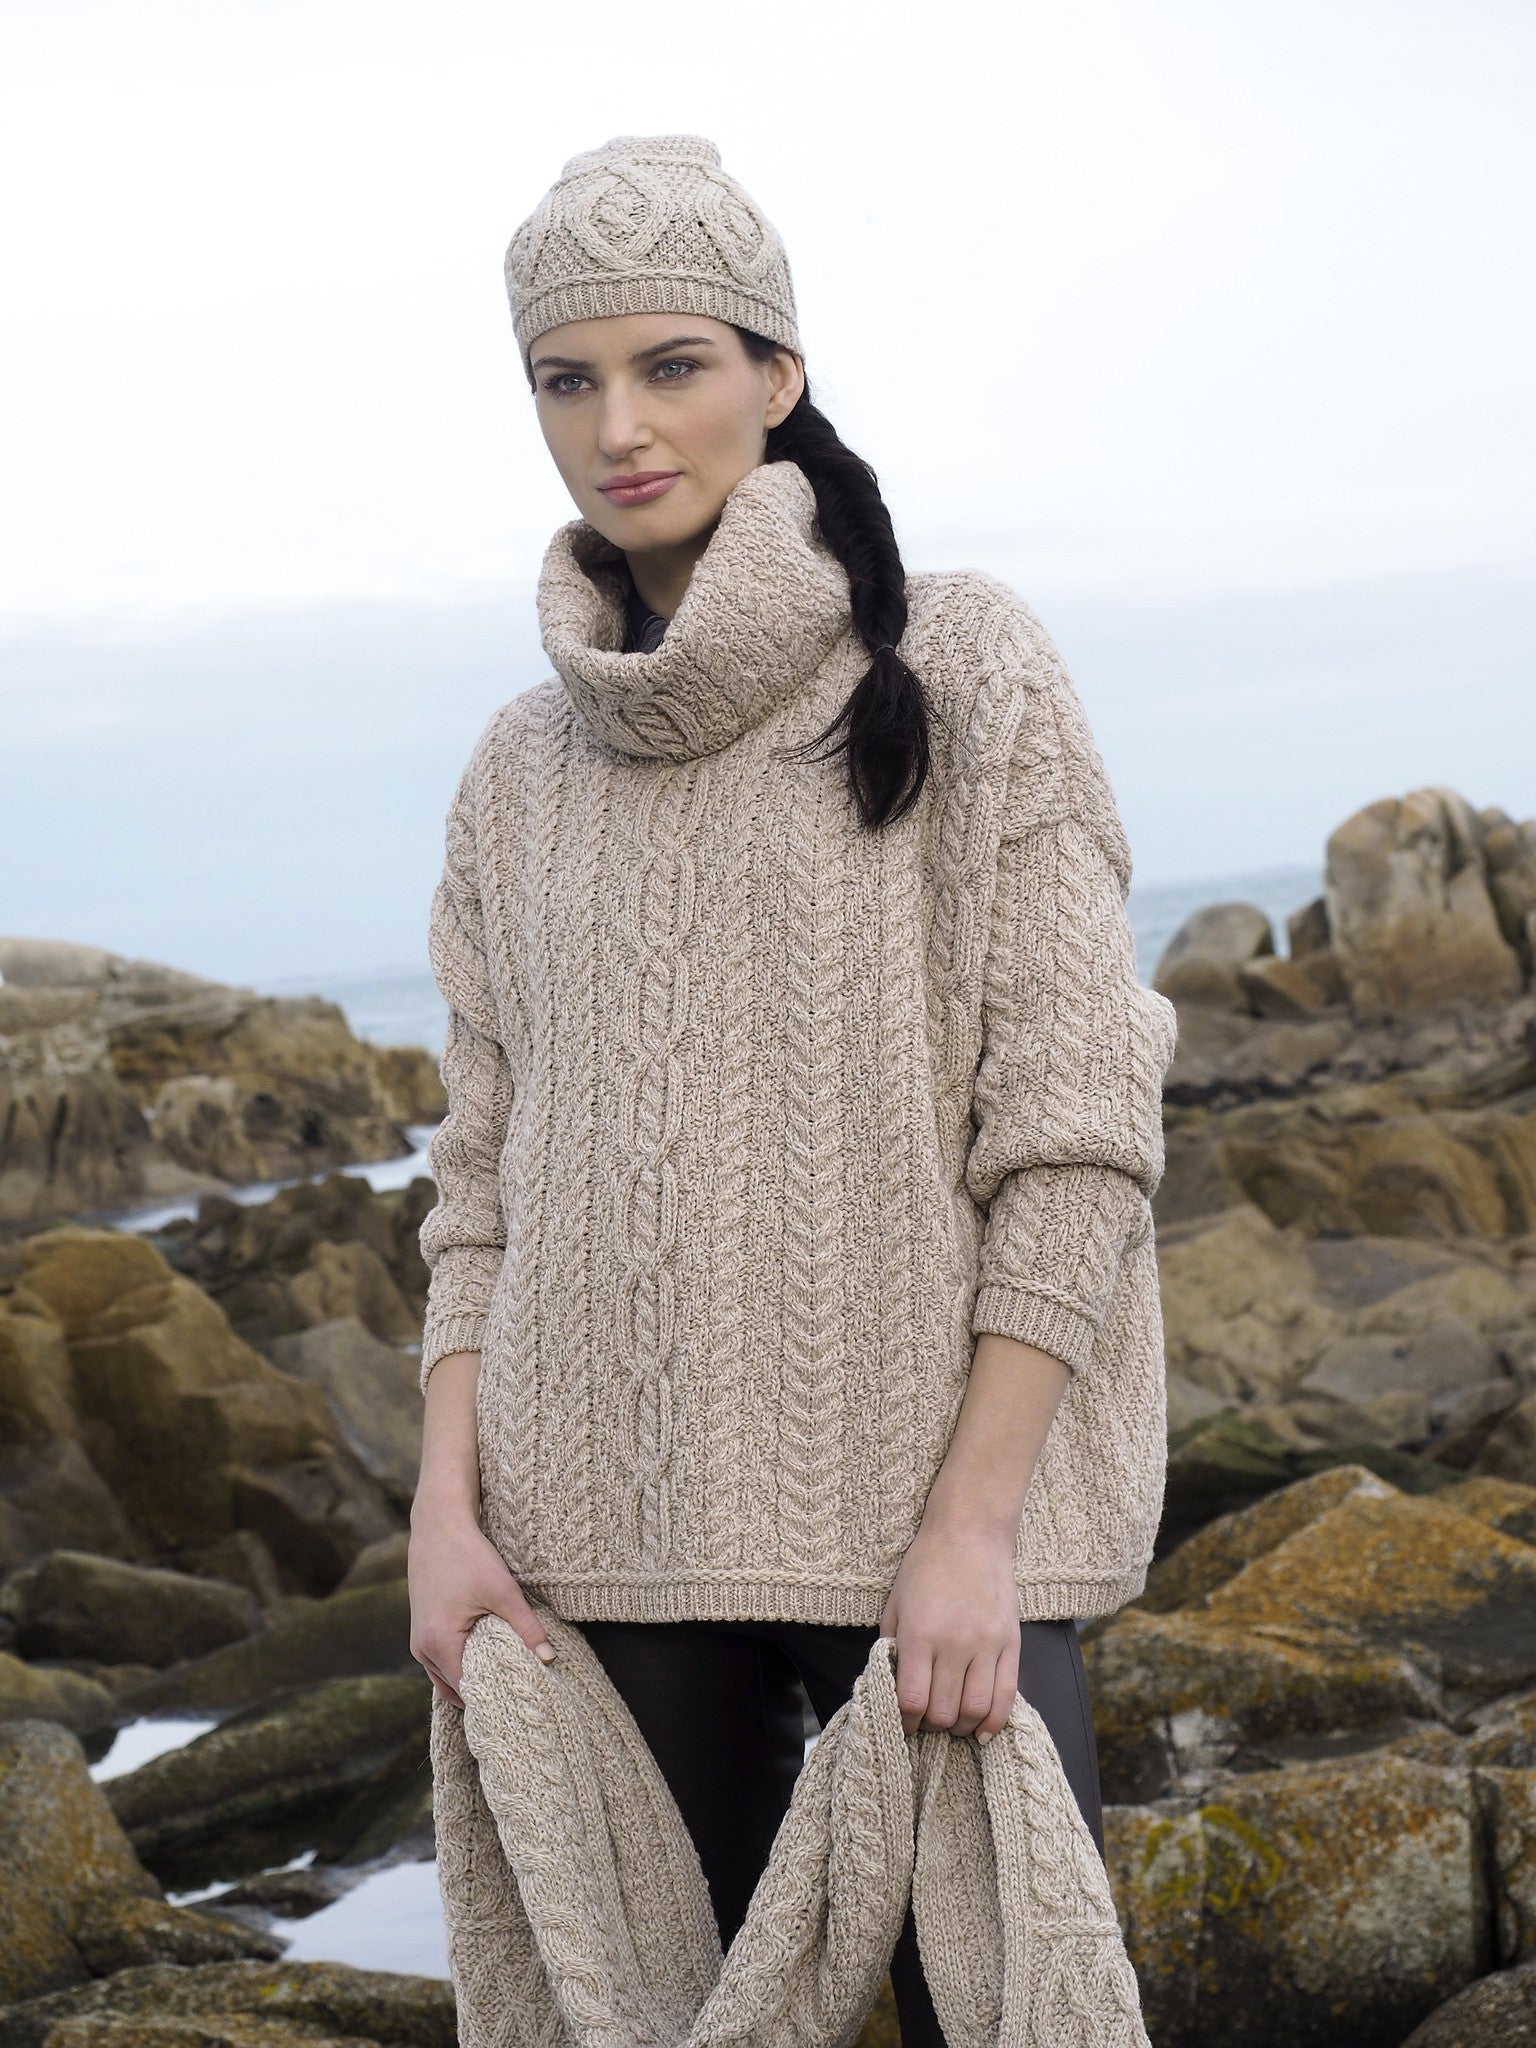 Women's Baggy Aran Sweater - Parsnip